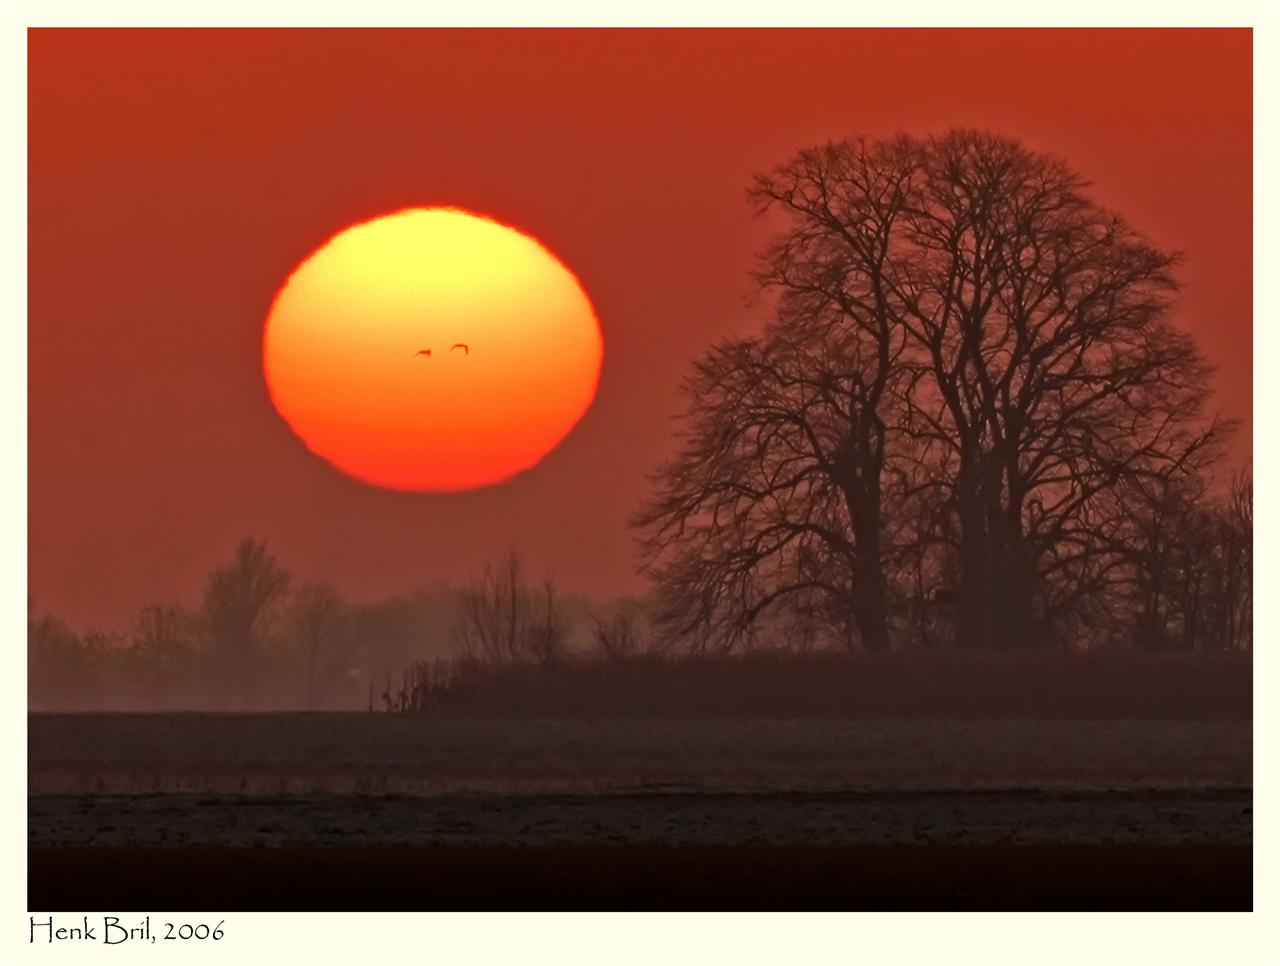 A cold sunrise giving a warm feeling